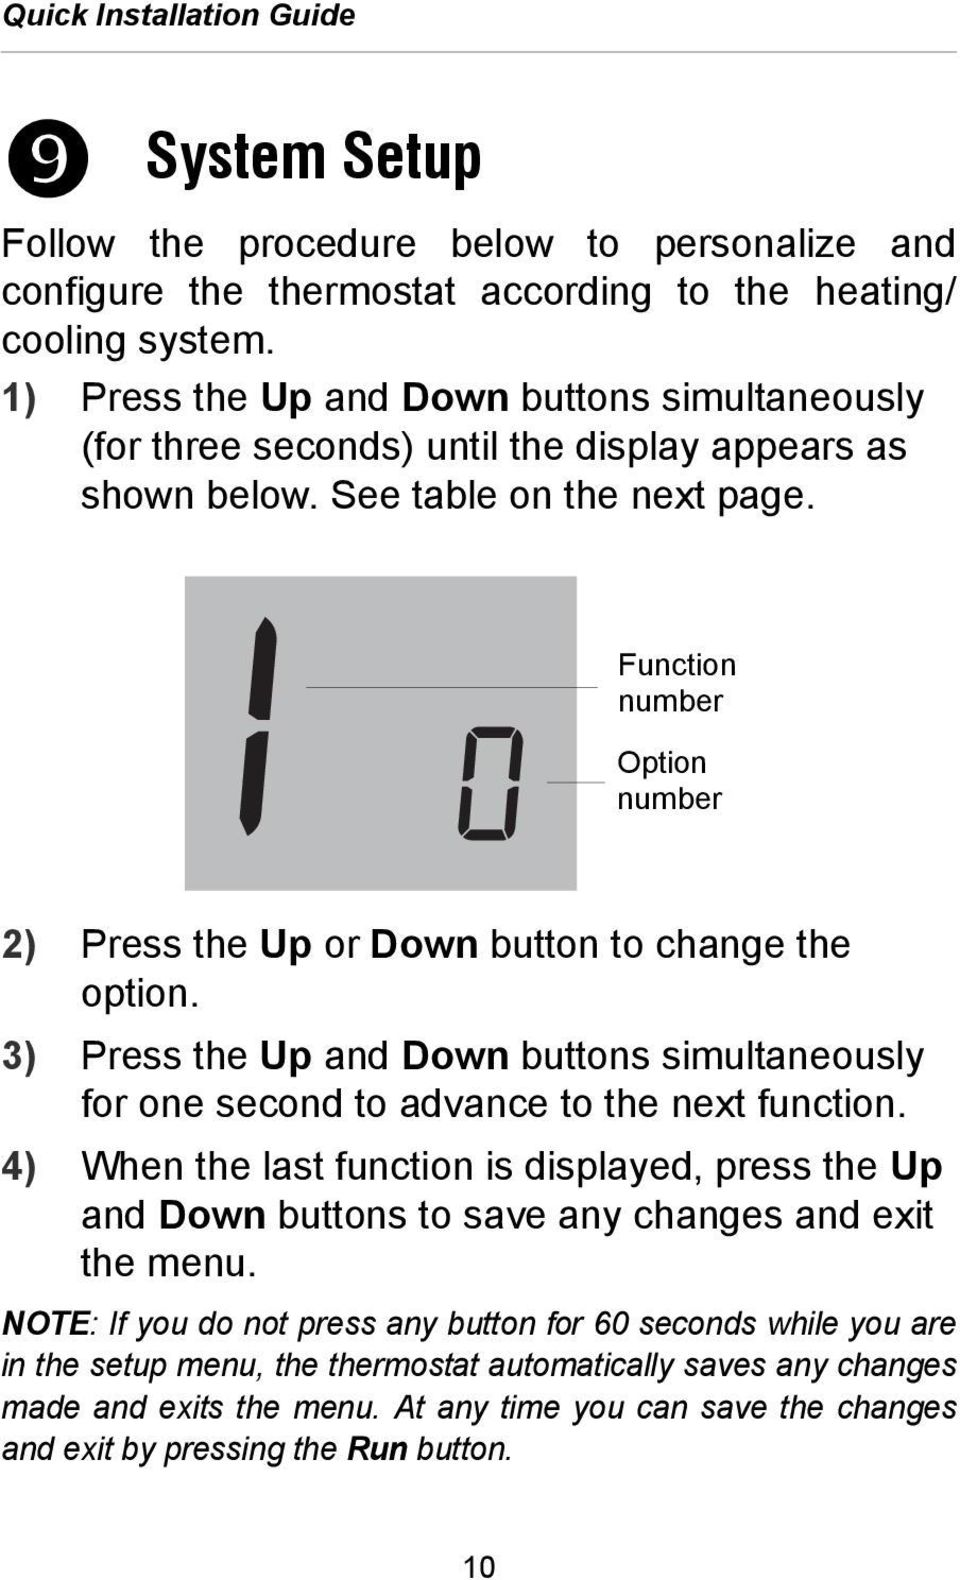 Function number Option number 2) Press the Up or Down button to change the option. 3) Press the Up and Down buttons simultaneously for one second to advance to the next function.